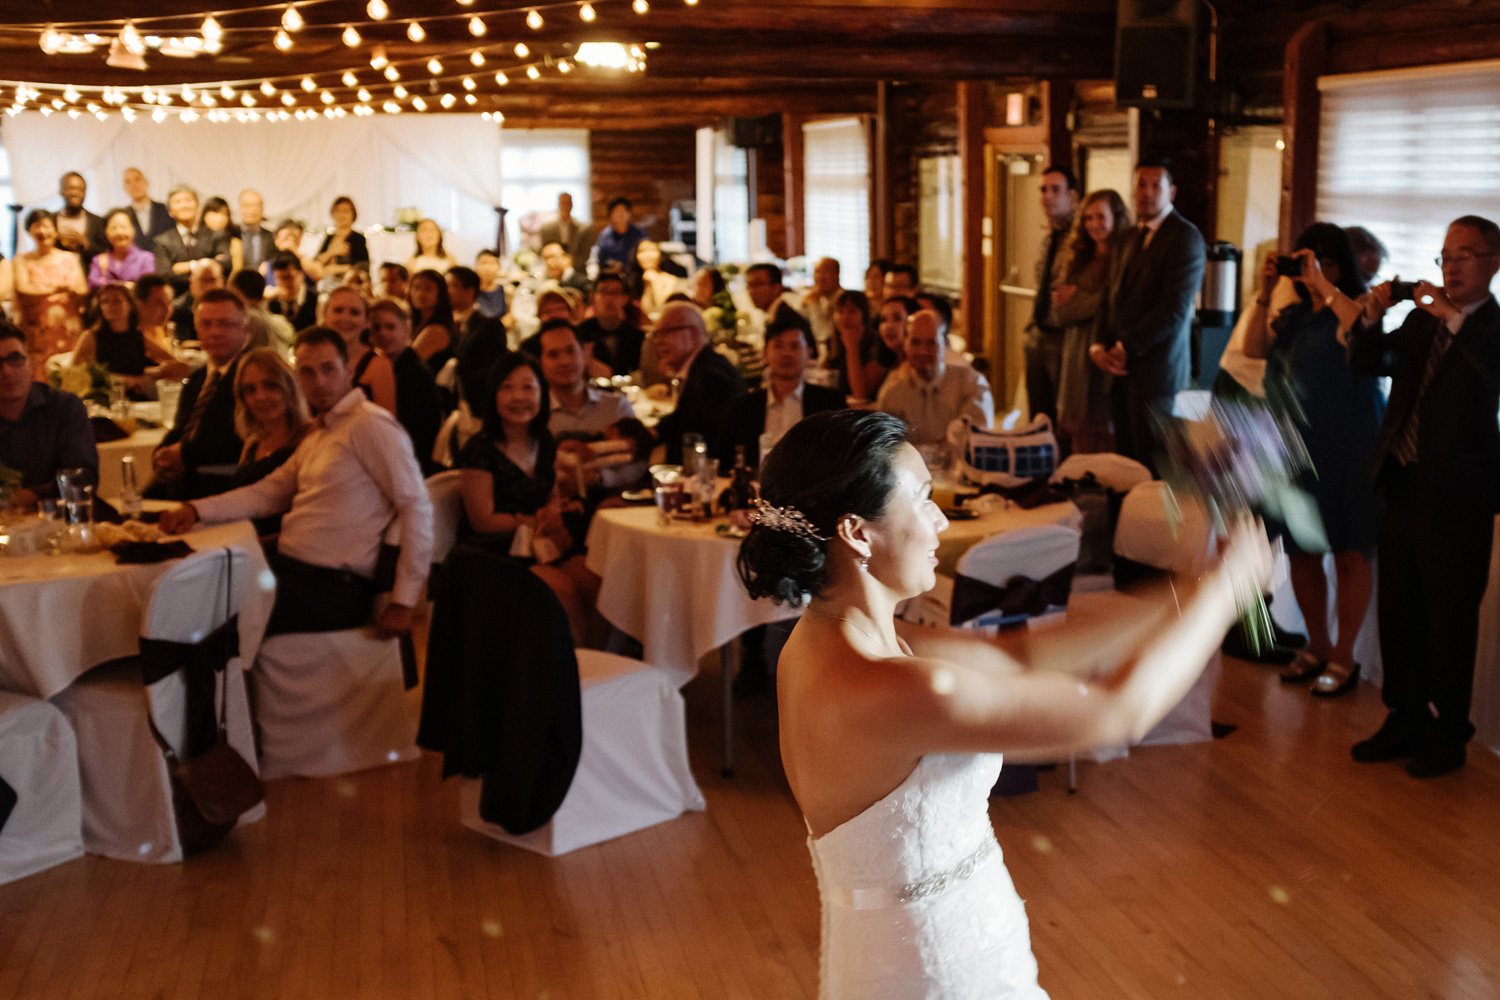 Edmonton Old Timers cabin wedding - 0117.JPG